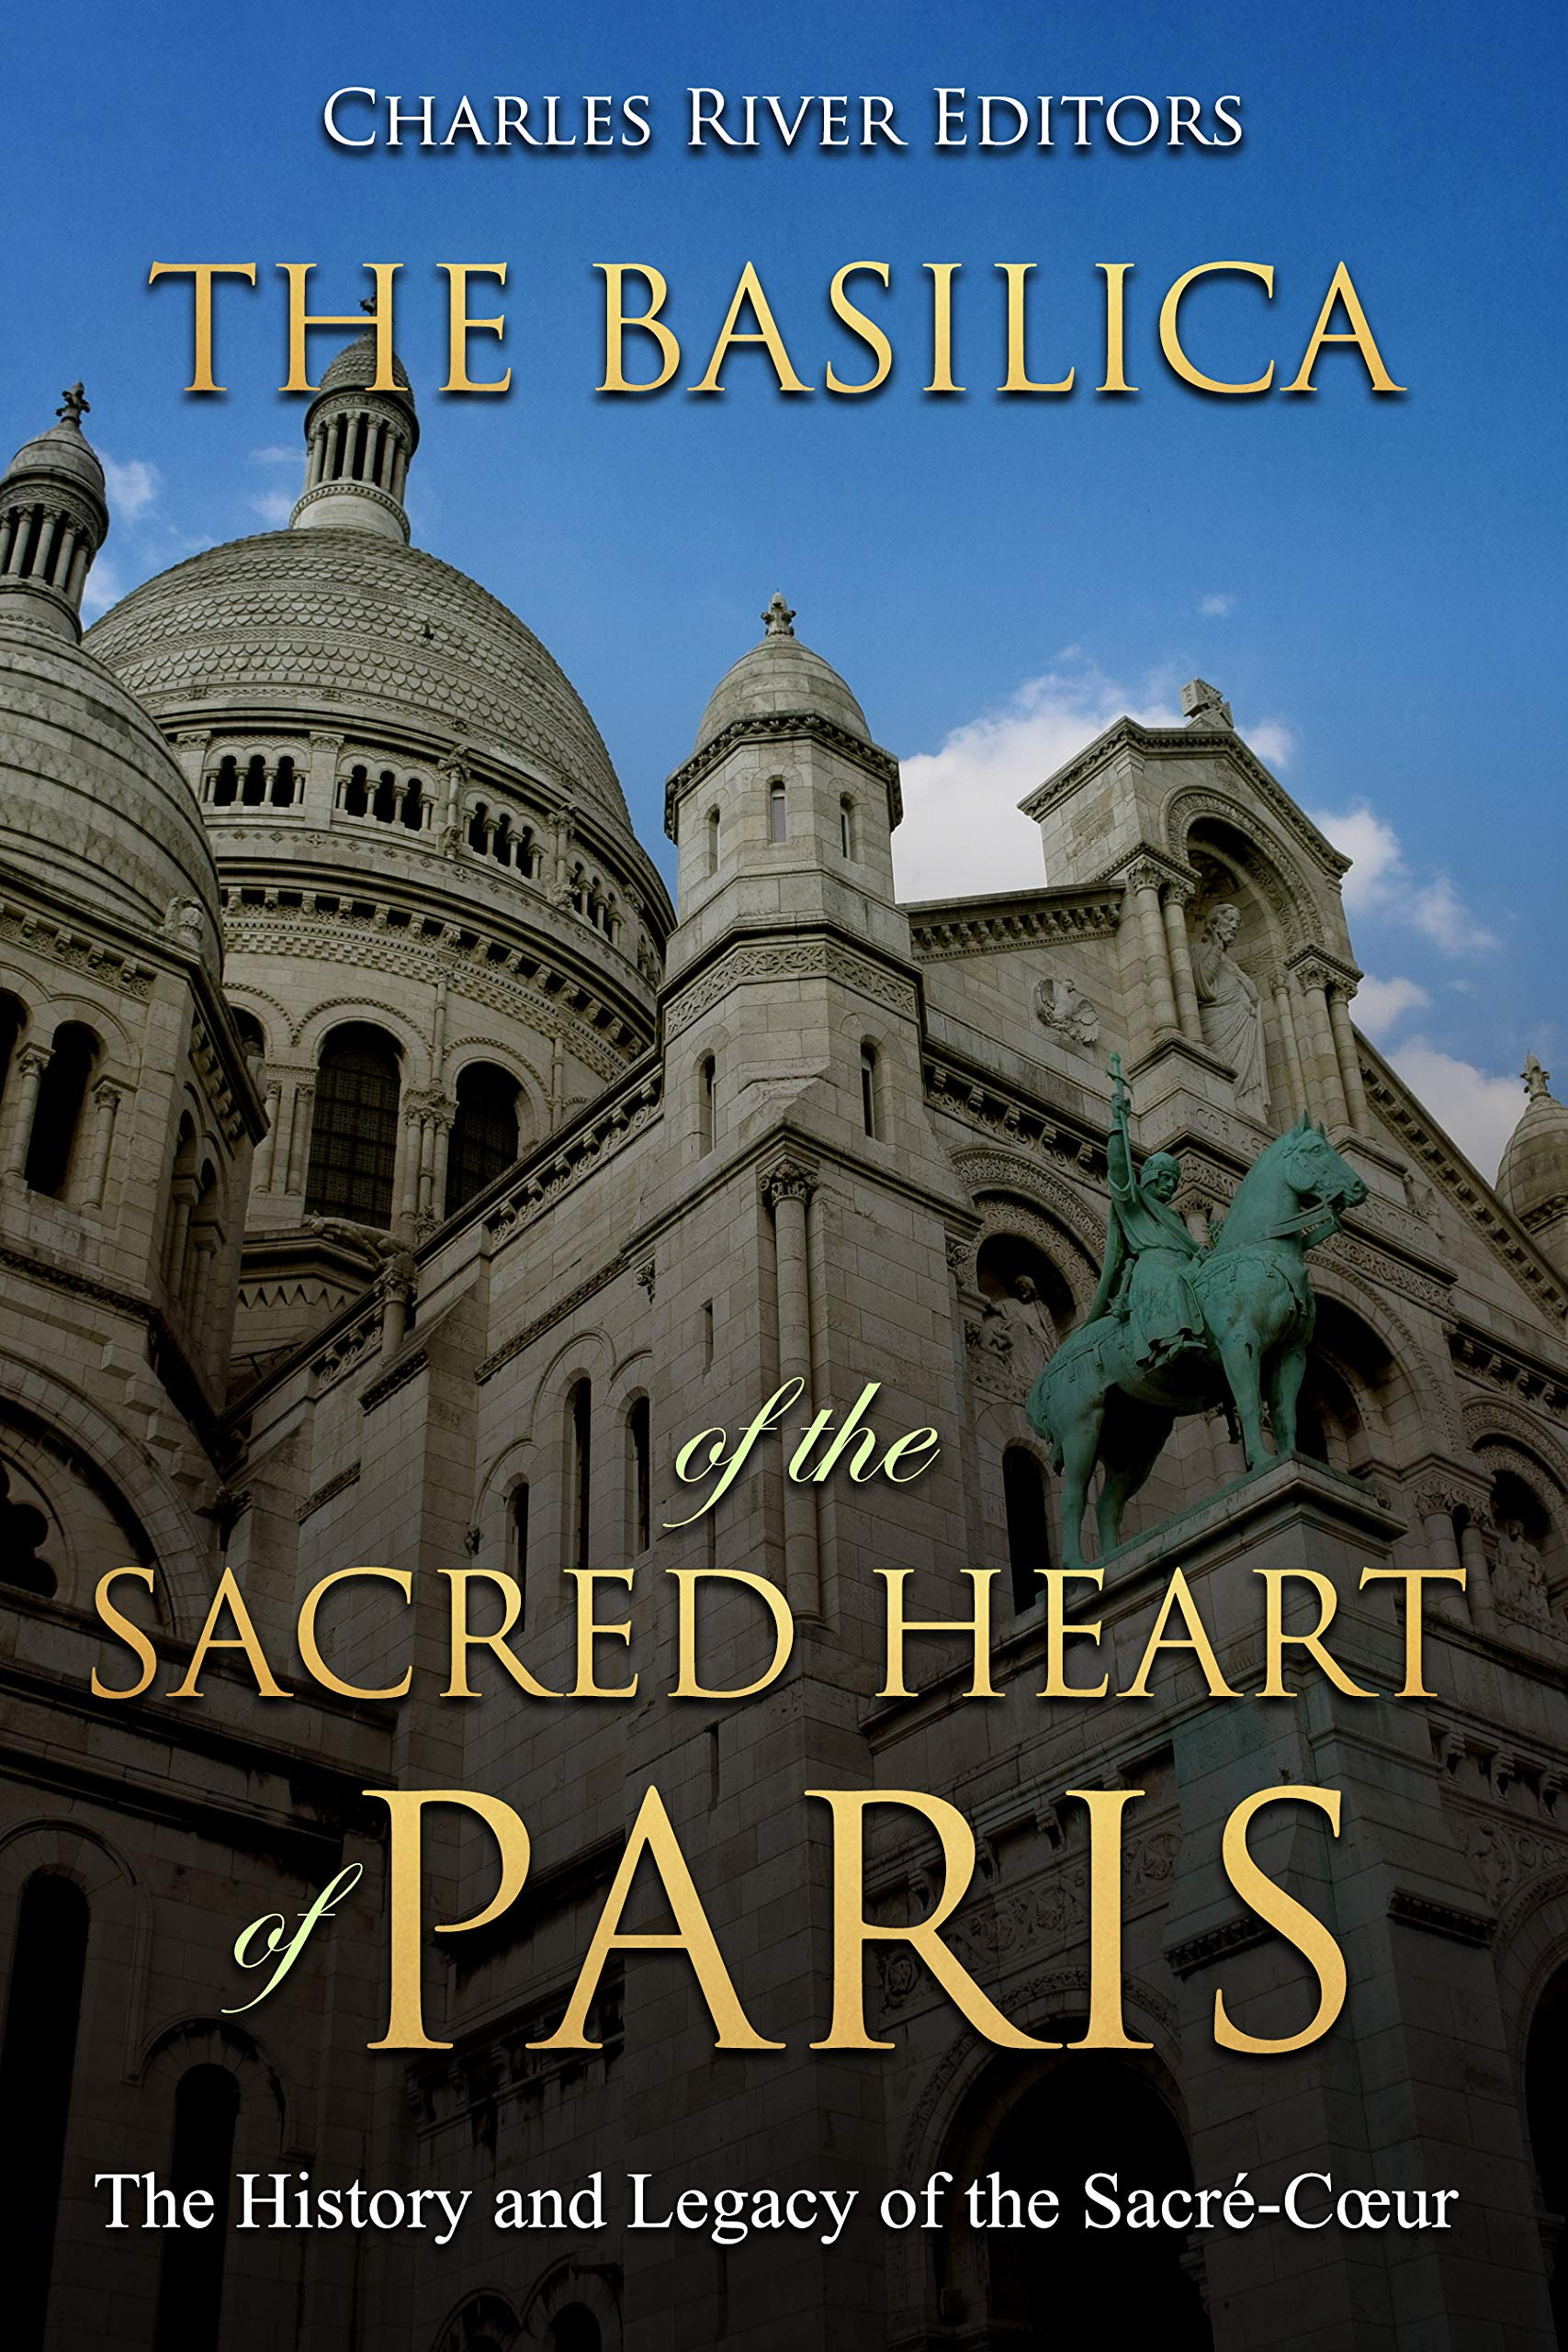 The Basilica of the Sacréd Heart of Paris: